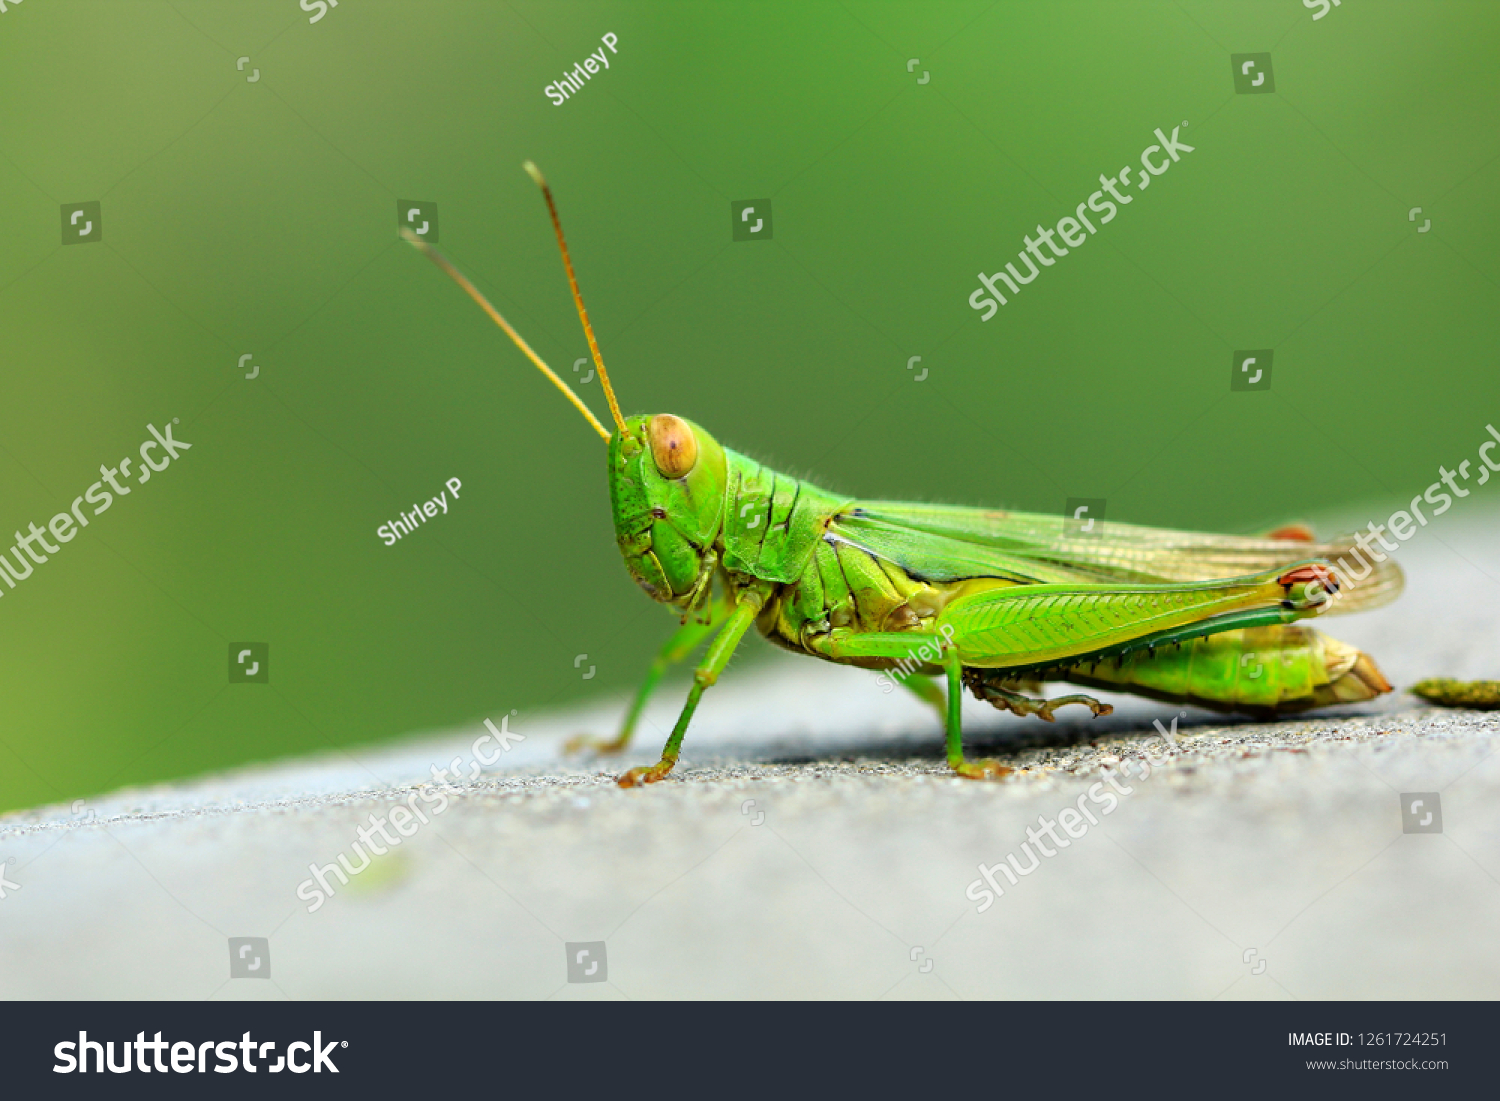 green grasshopper with big eyes #1261724251